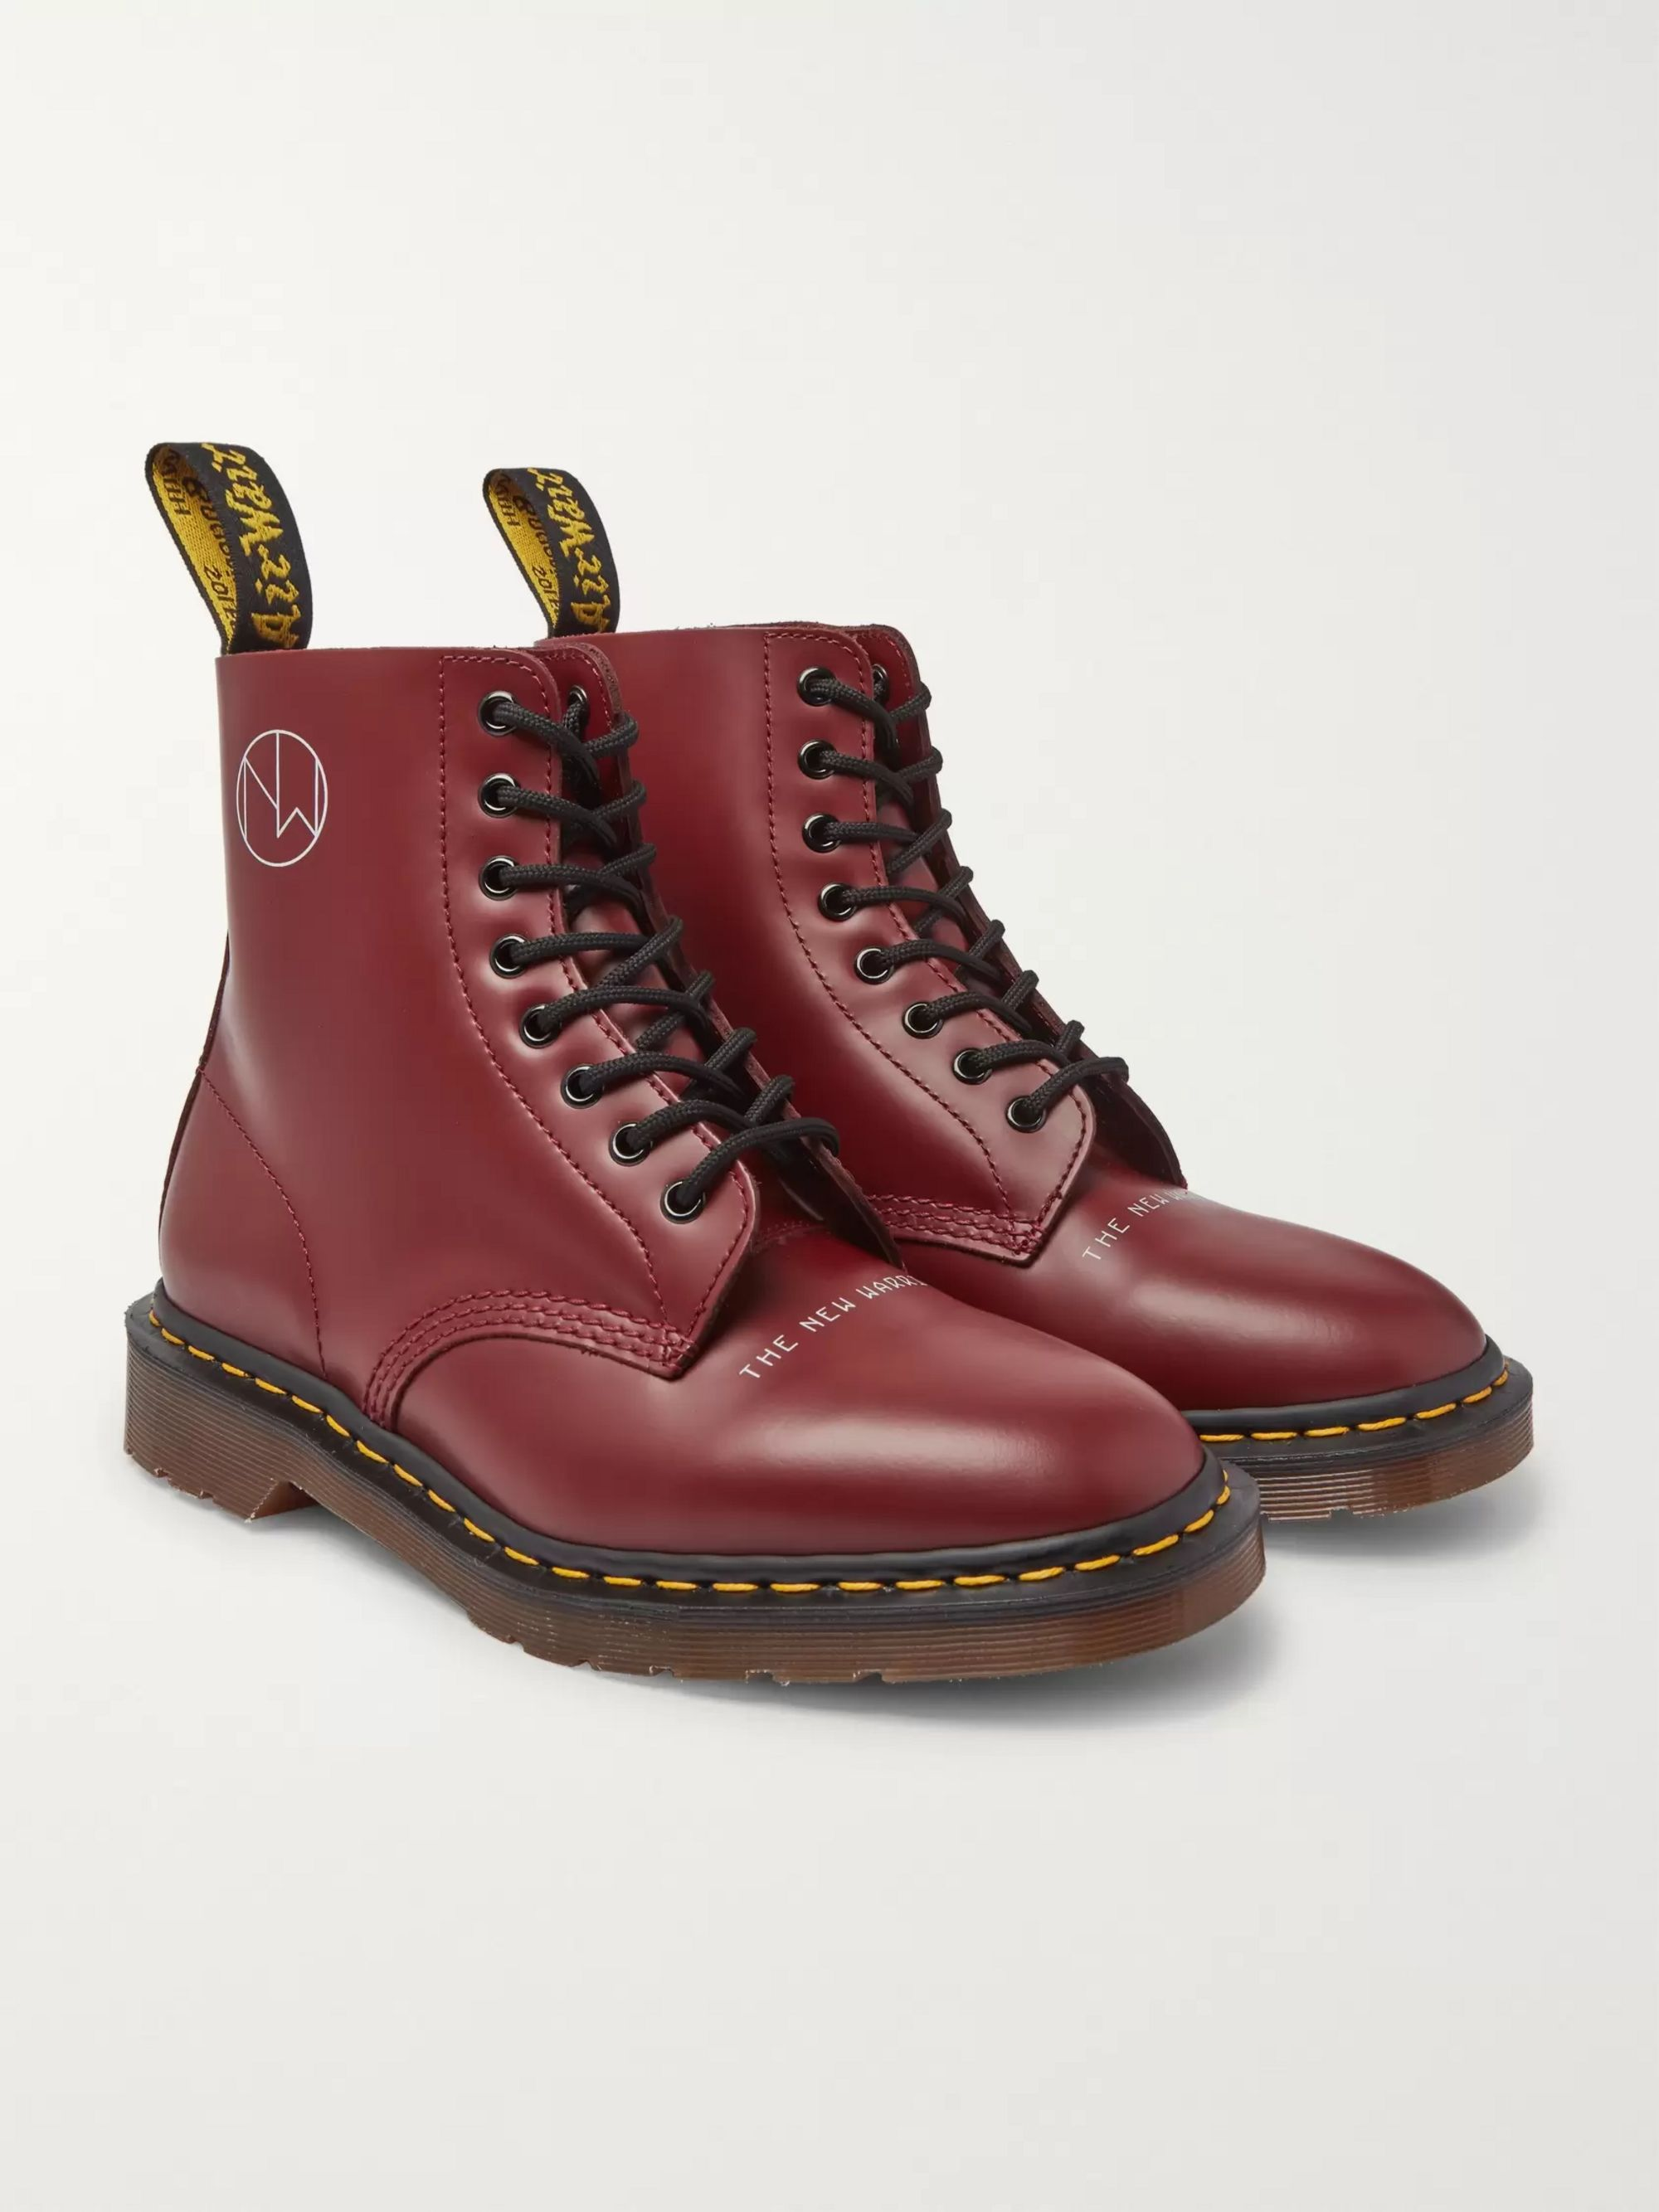 hot sale online e2086 fa442 + Dr. Martens 1460 Printed Leather Boots